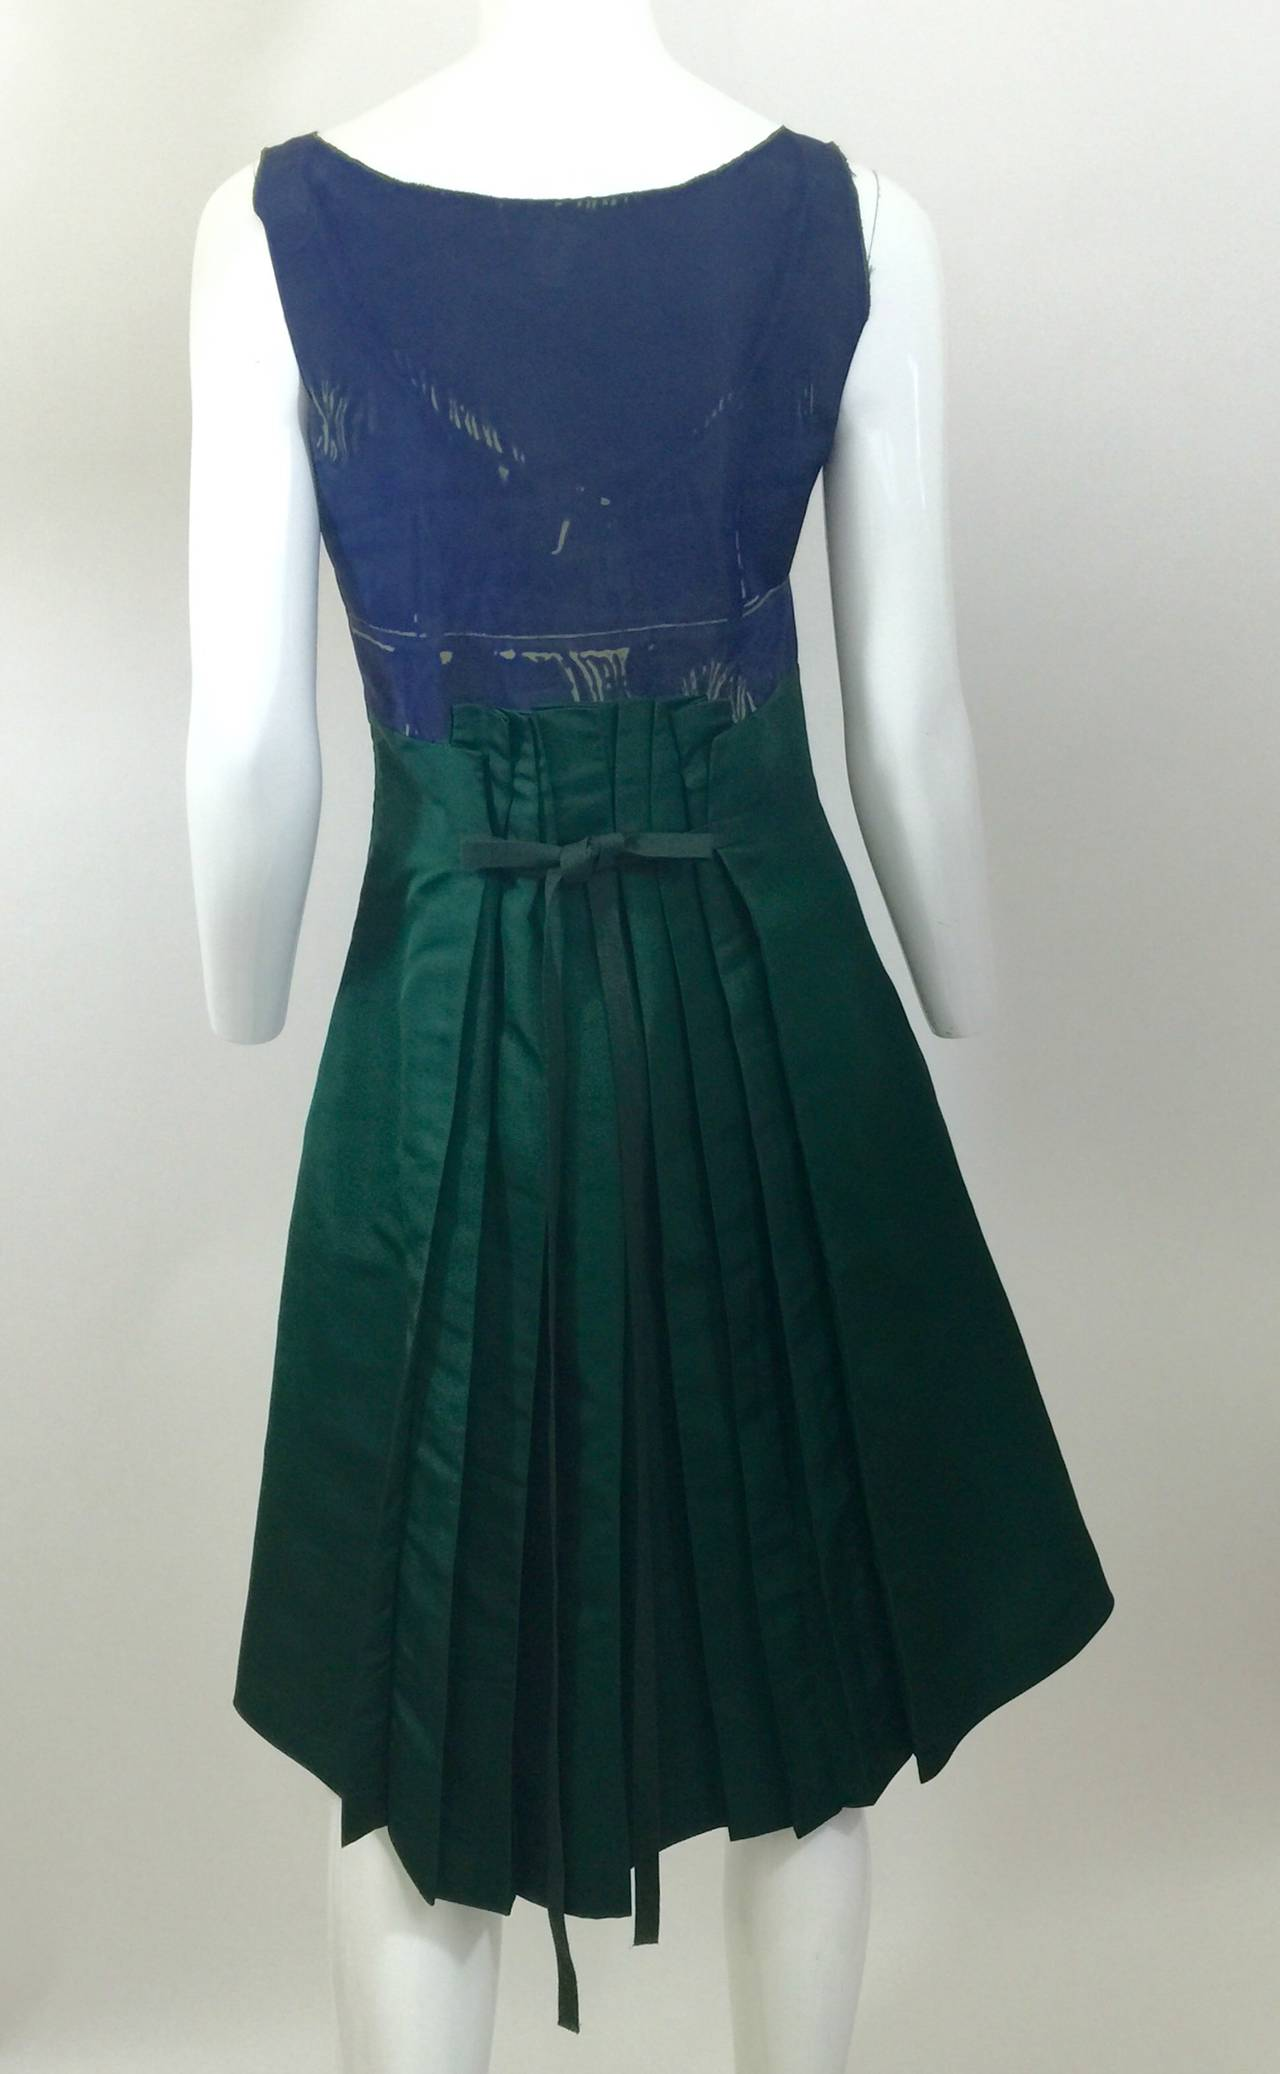 Prada Spring  2005 Runway Look 53 Parrot Dress In Excellent Condition For Sale In Boca Raton, FL